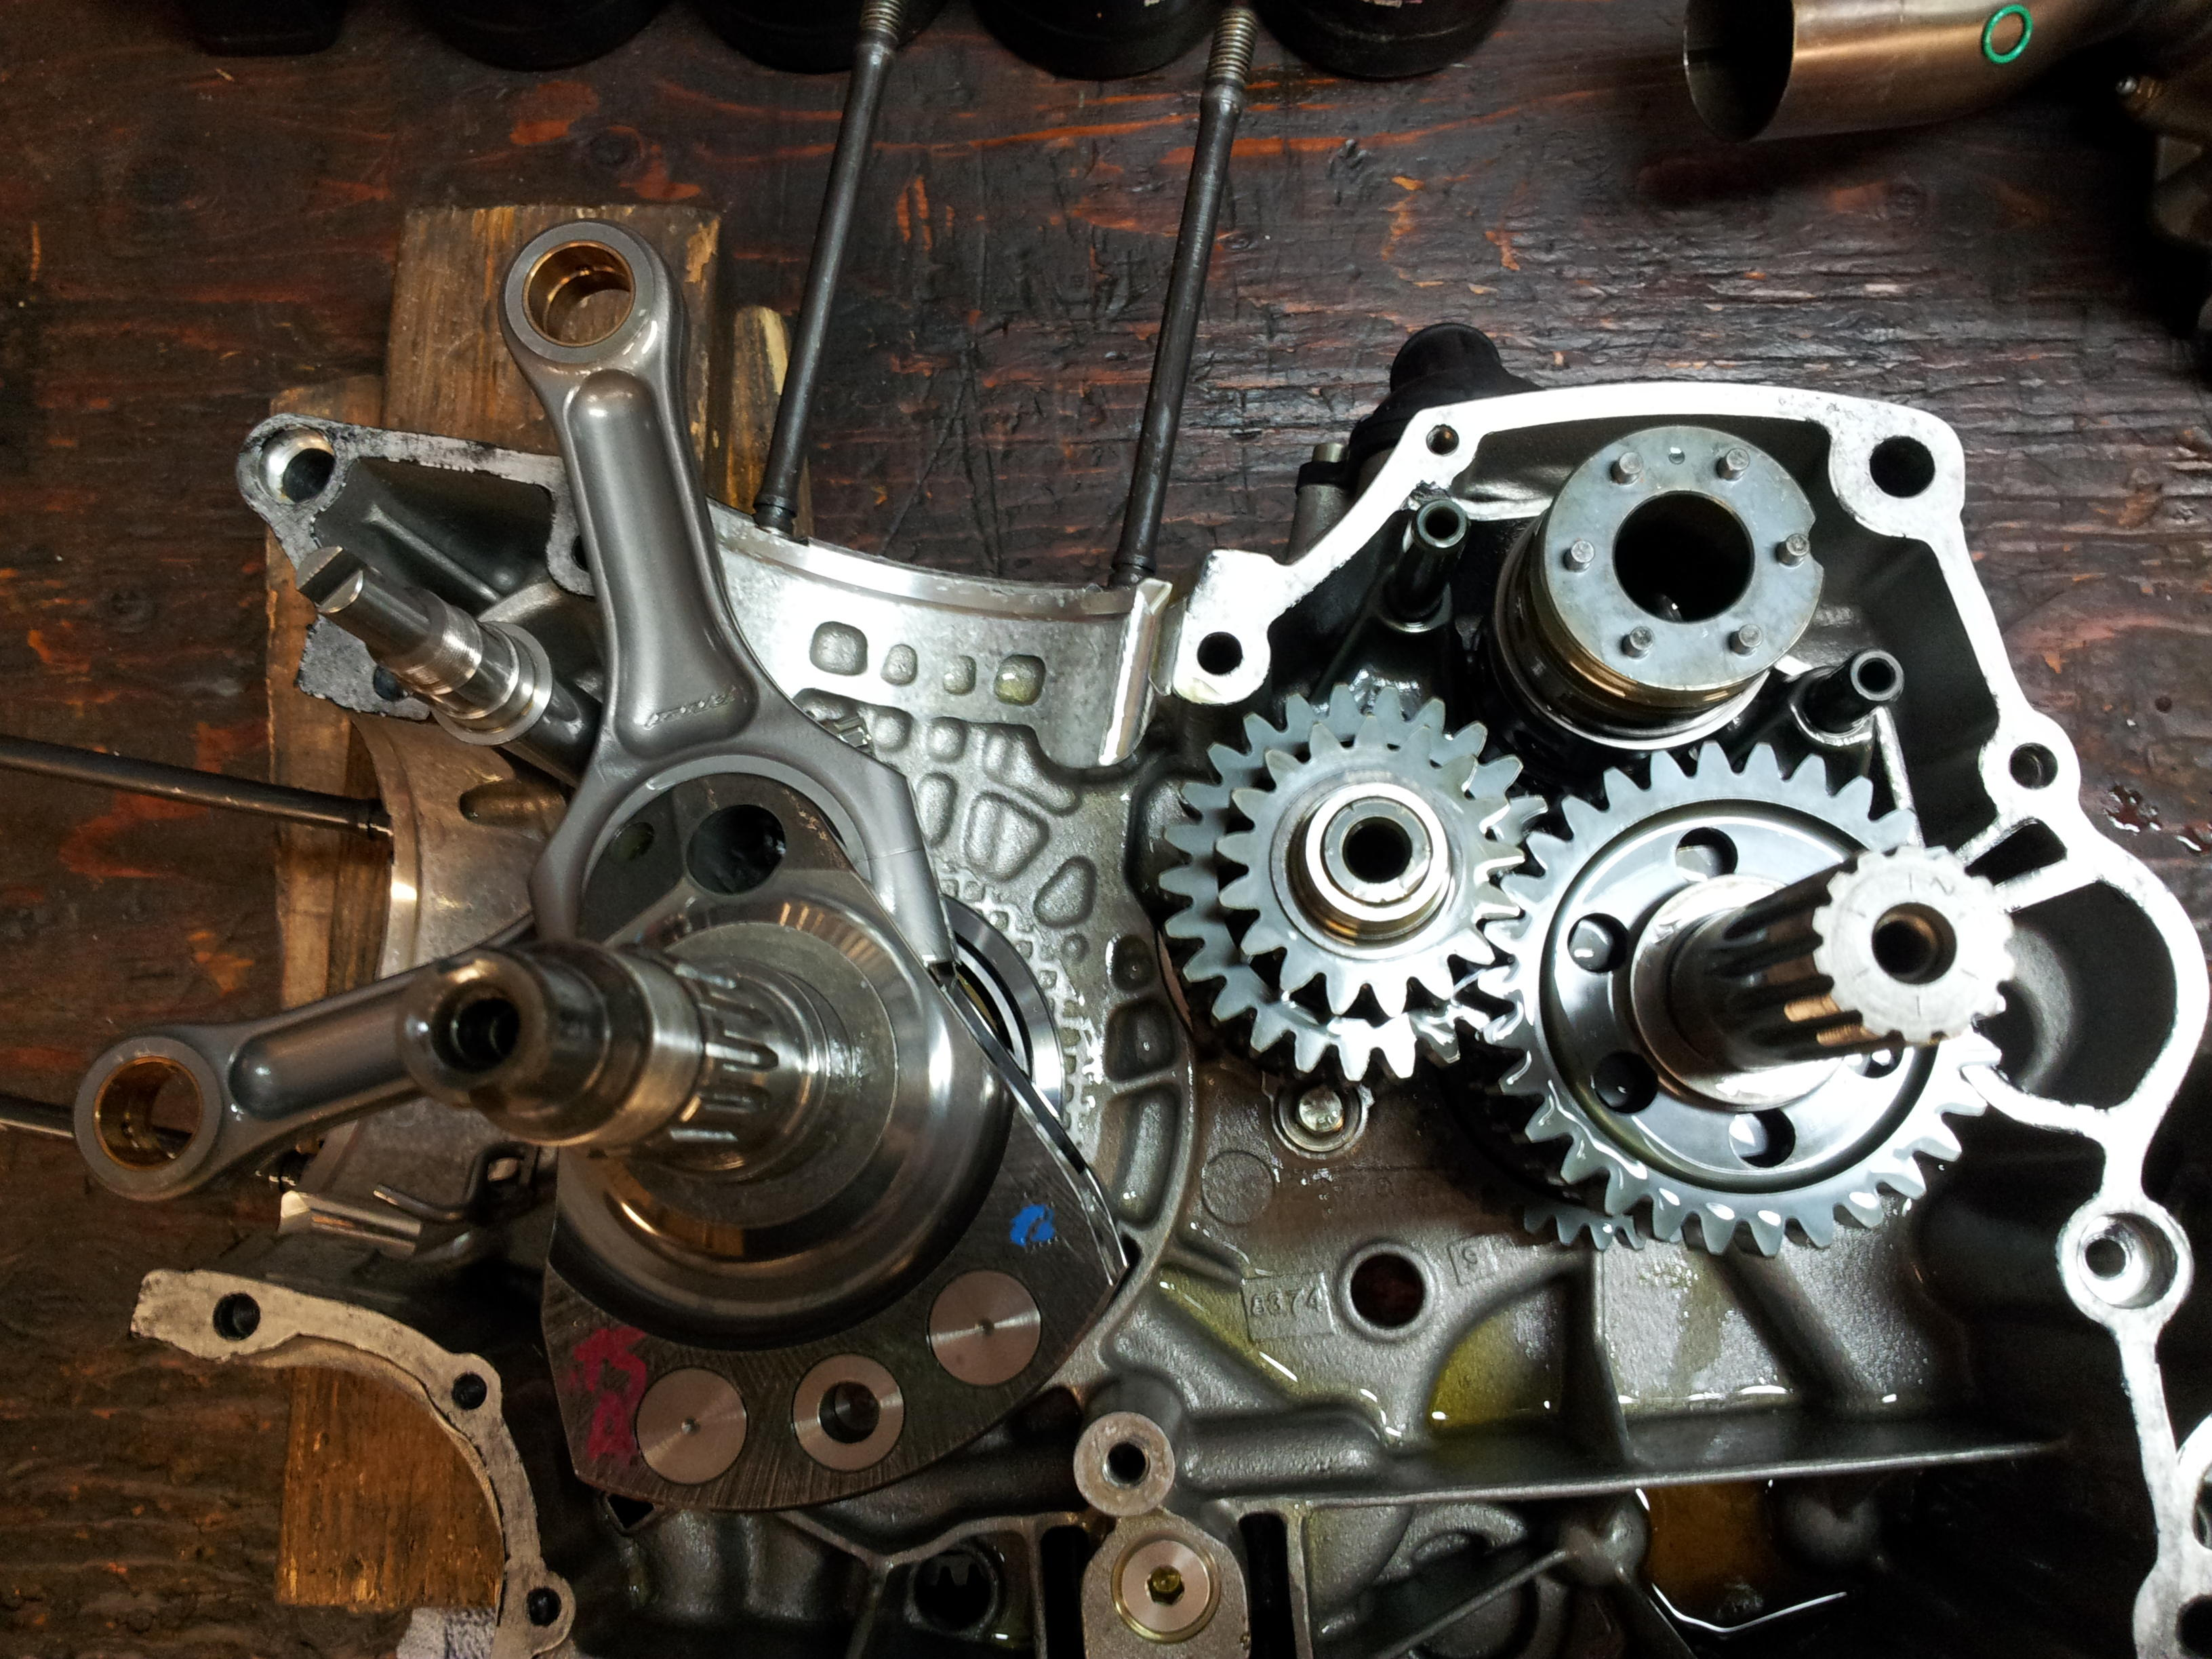 1098 engine tear down and rebuild for dummies - page 5 - ducati